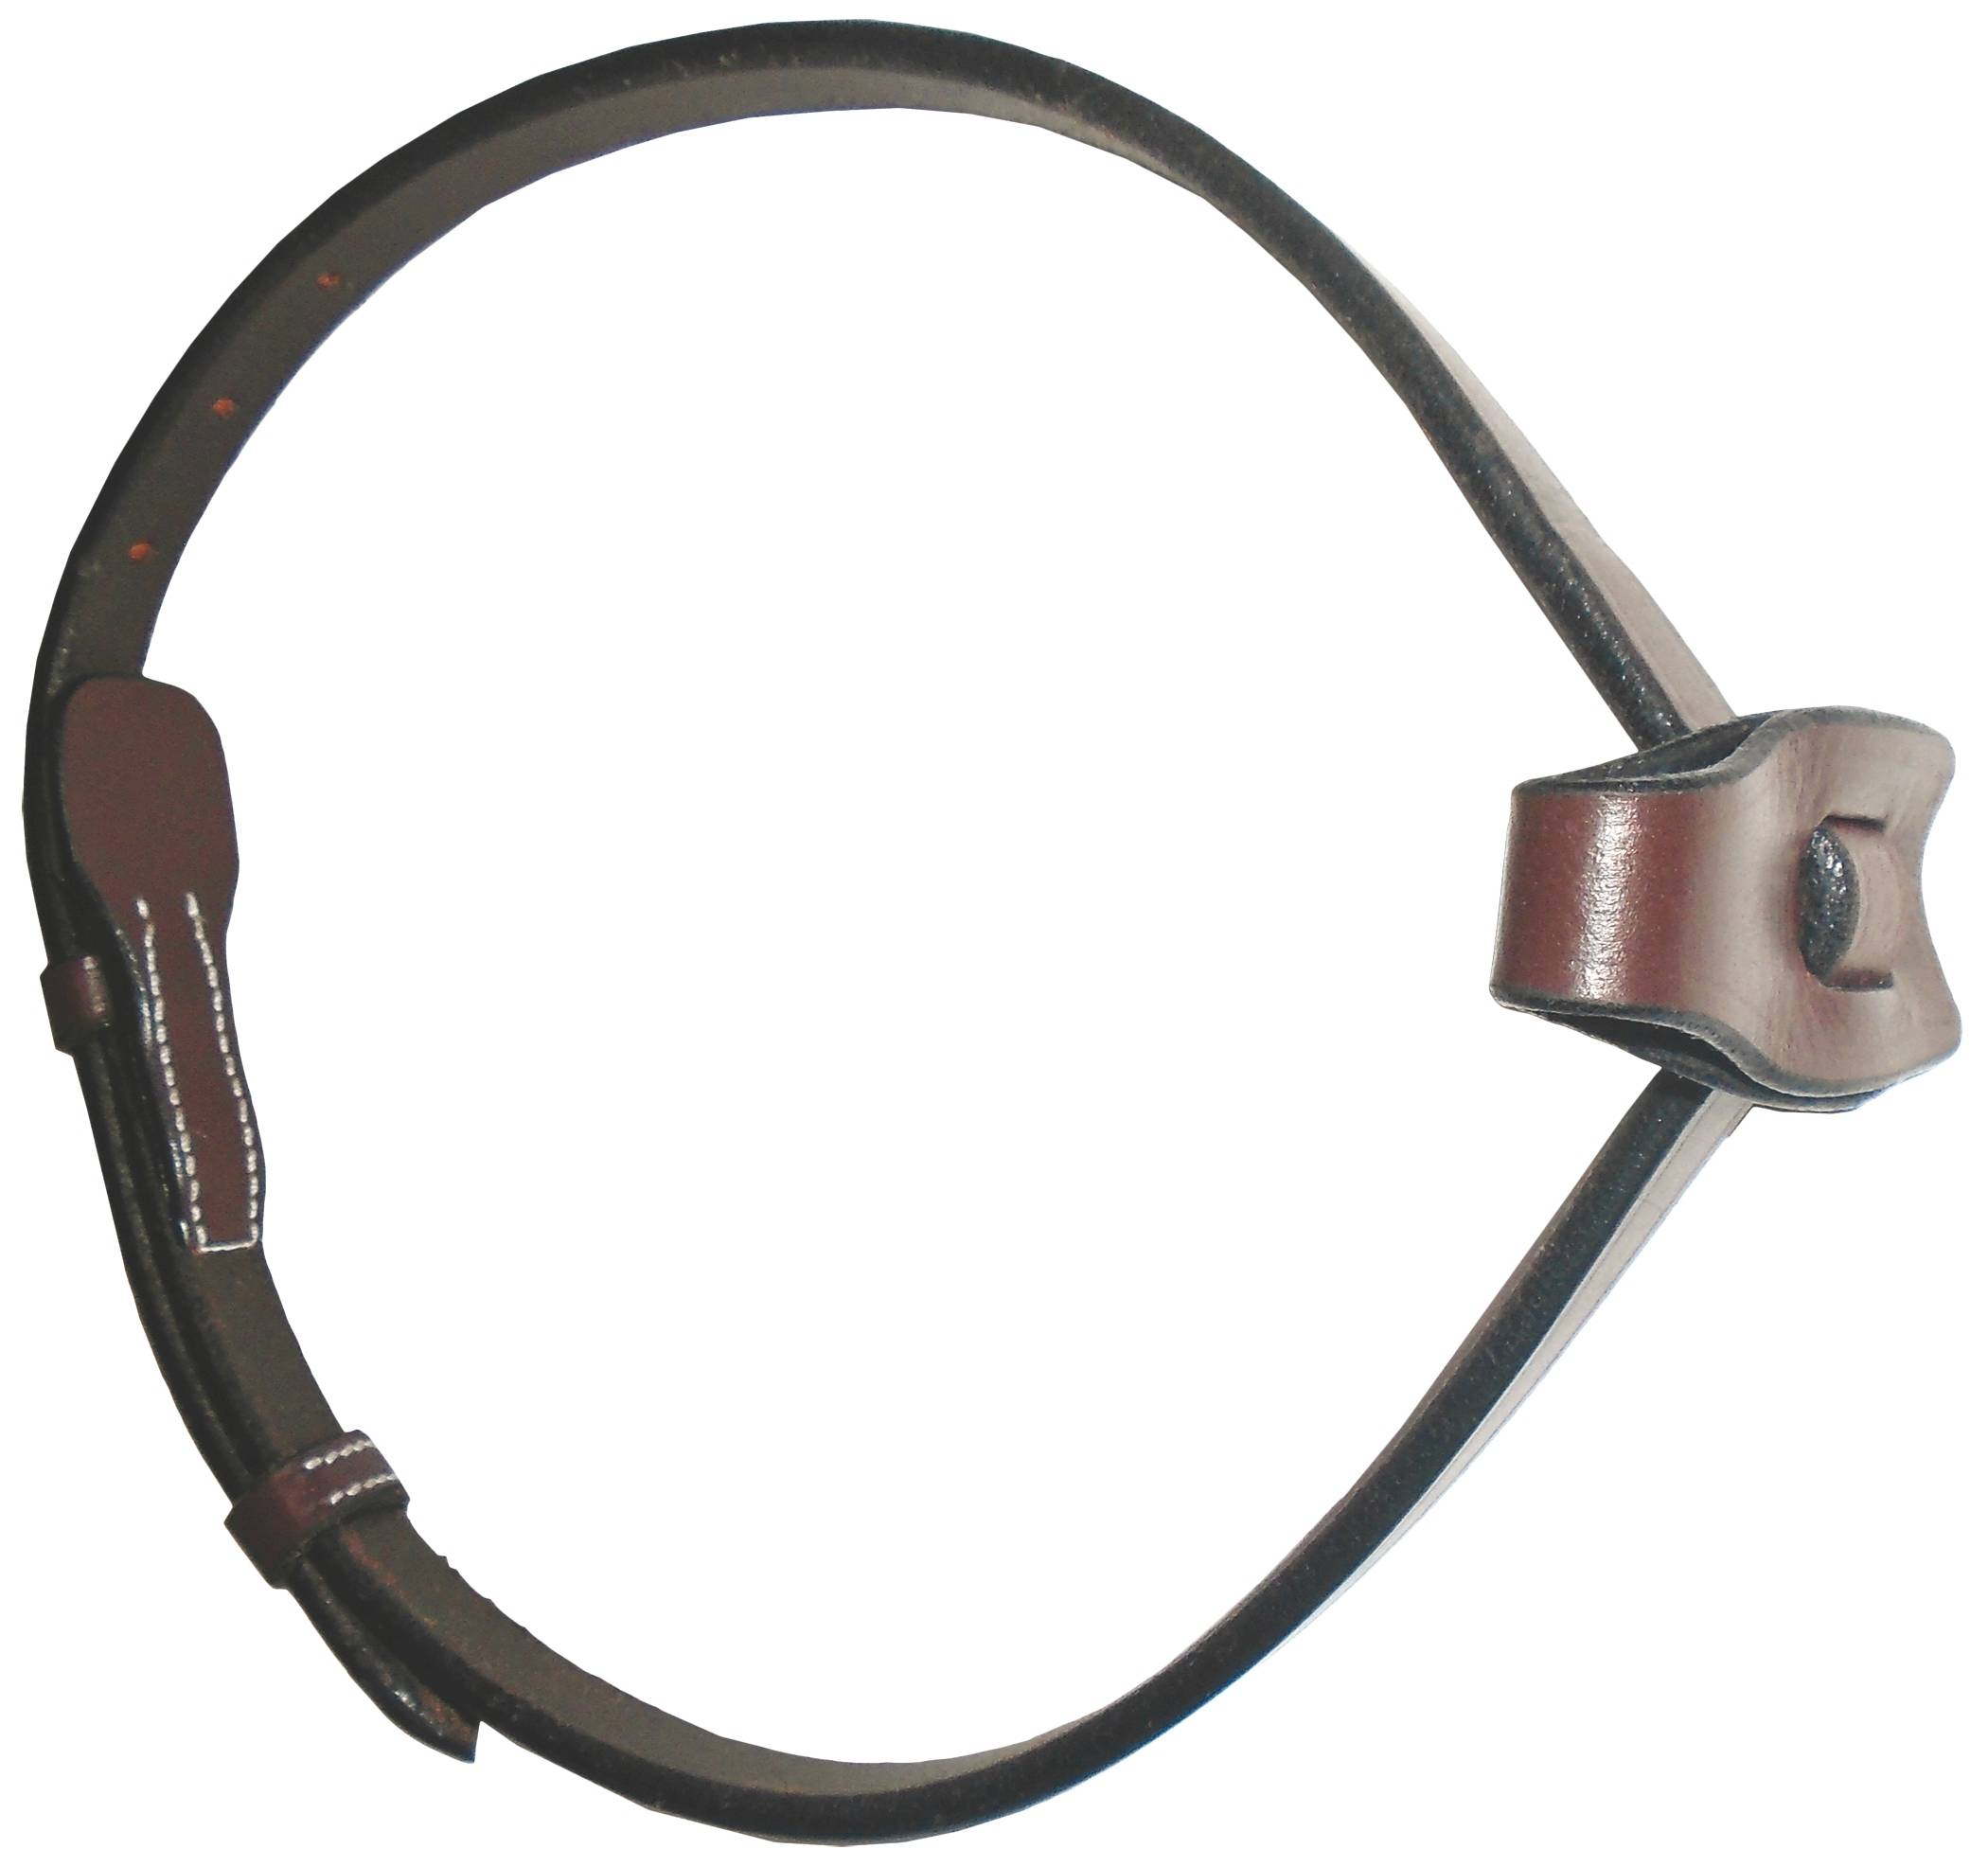 HDR Flash Noseband with Convertor